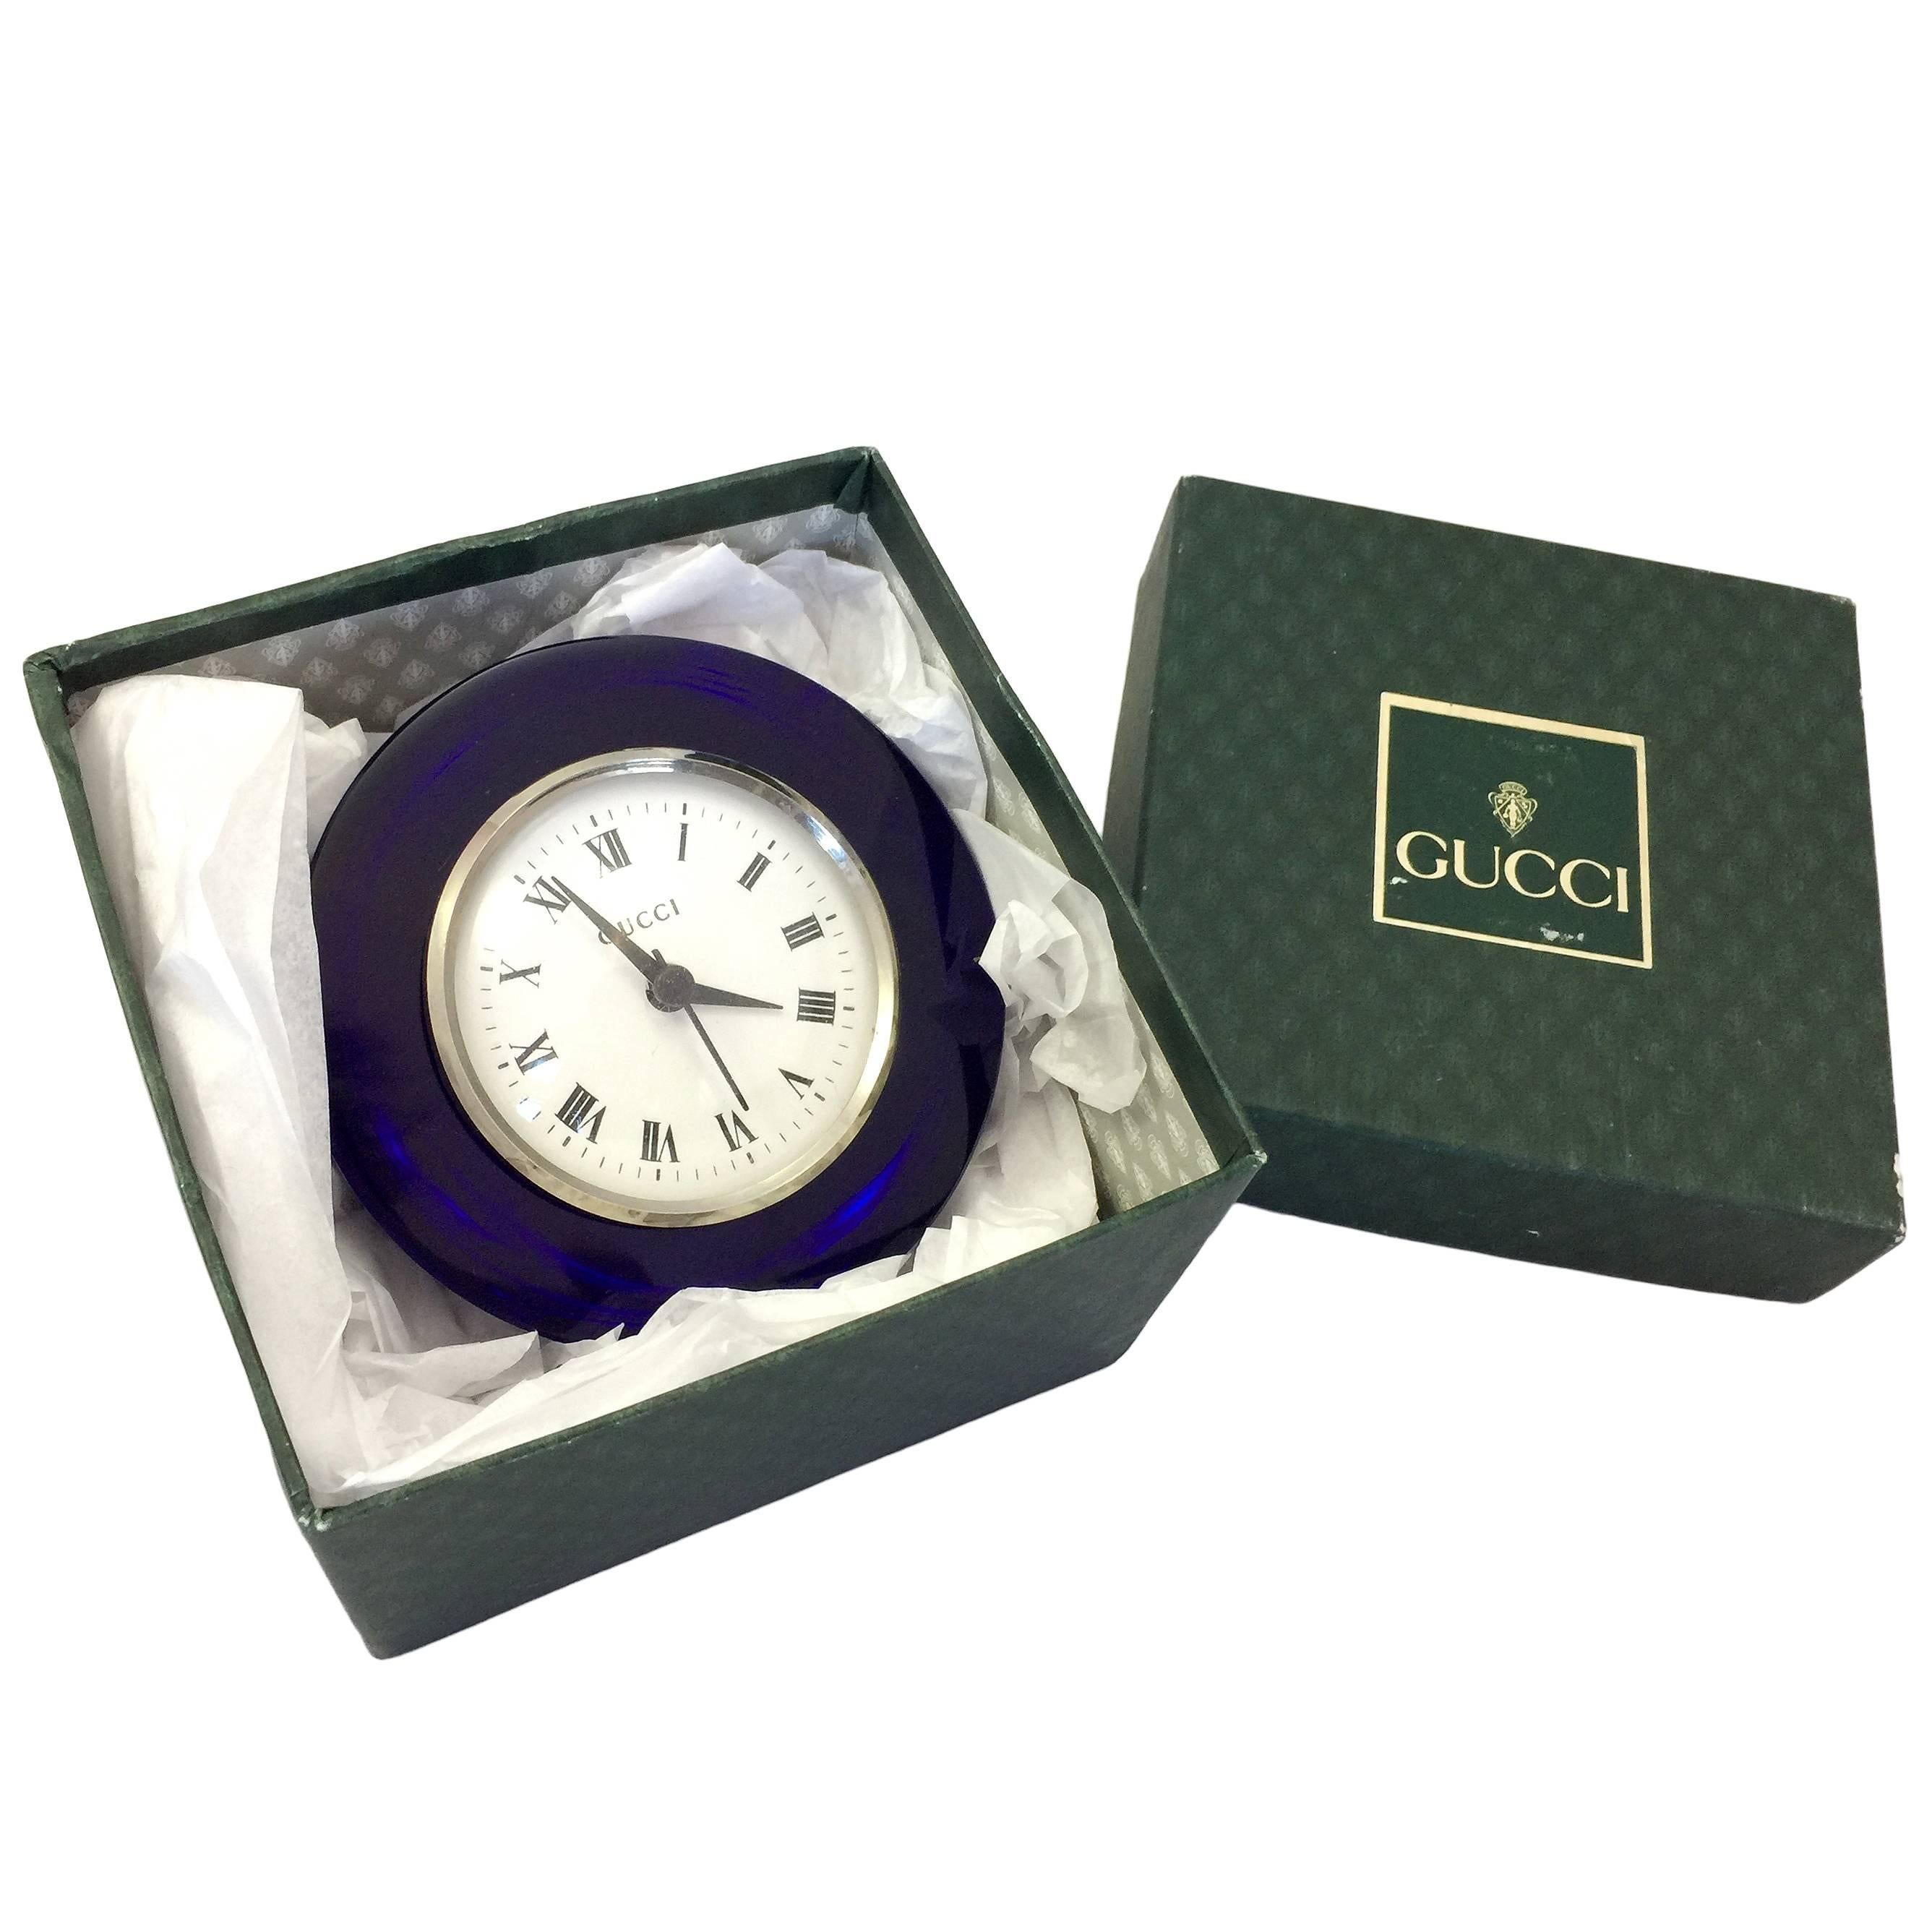 Incroyable Gucci Cobalt Glass Table Clock In Box For Sale